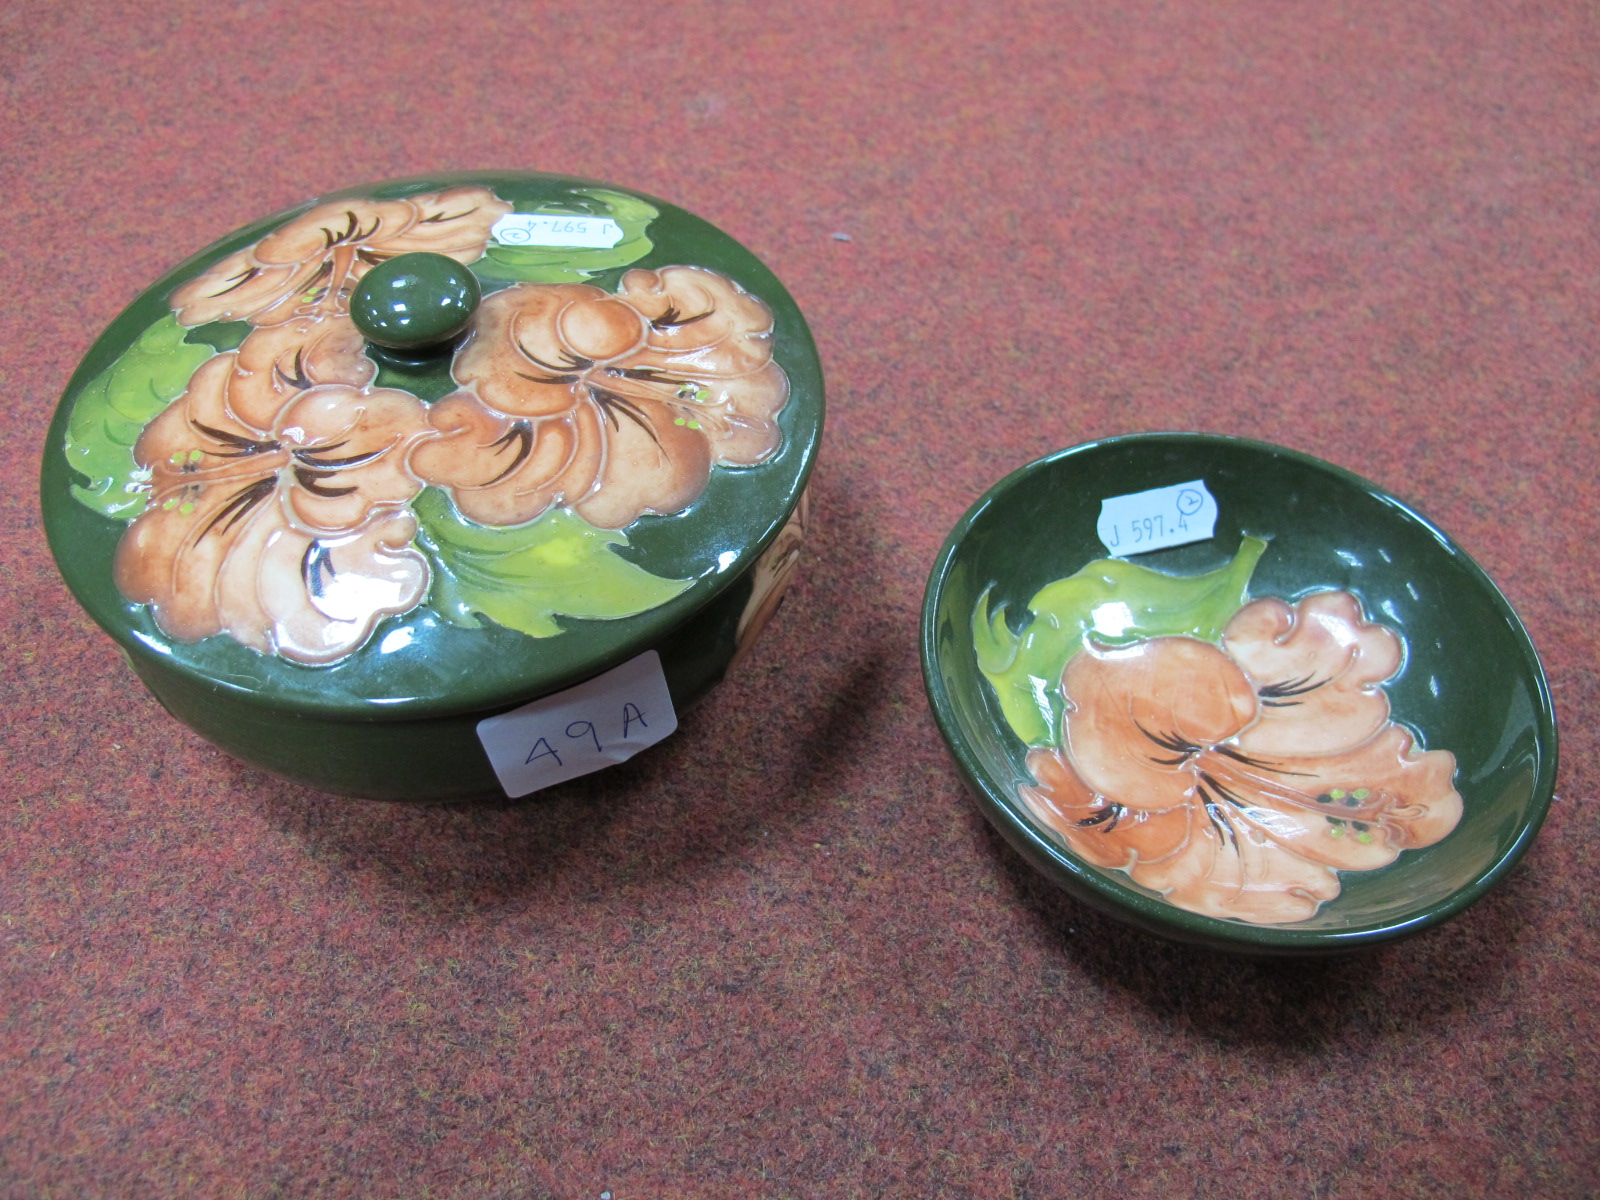 Lot 49A - A Moorcroft 'Hibiscus' Circular Bowl and Cover, together with a matching dish. (2)